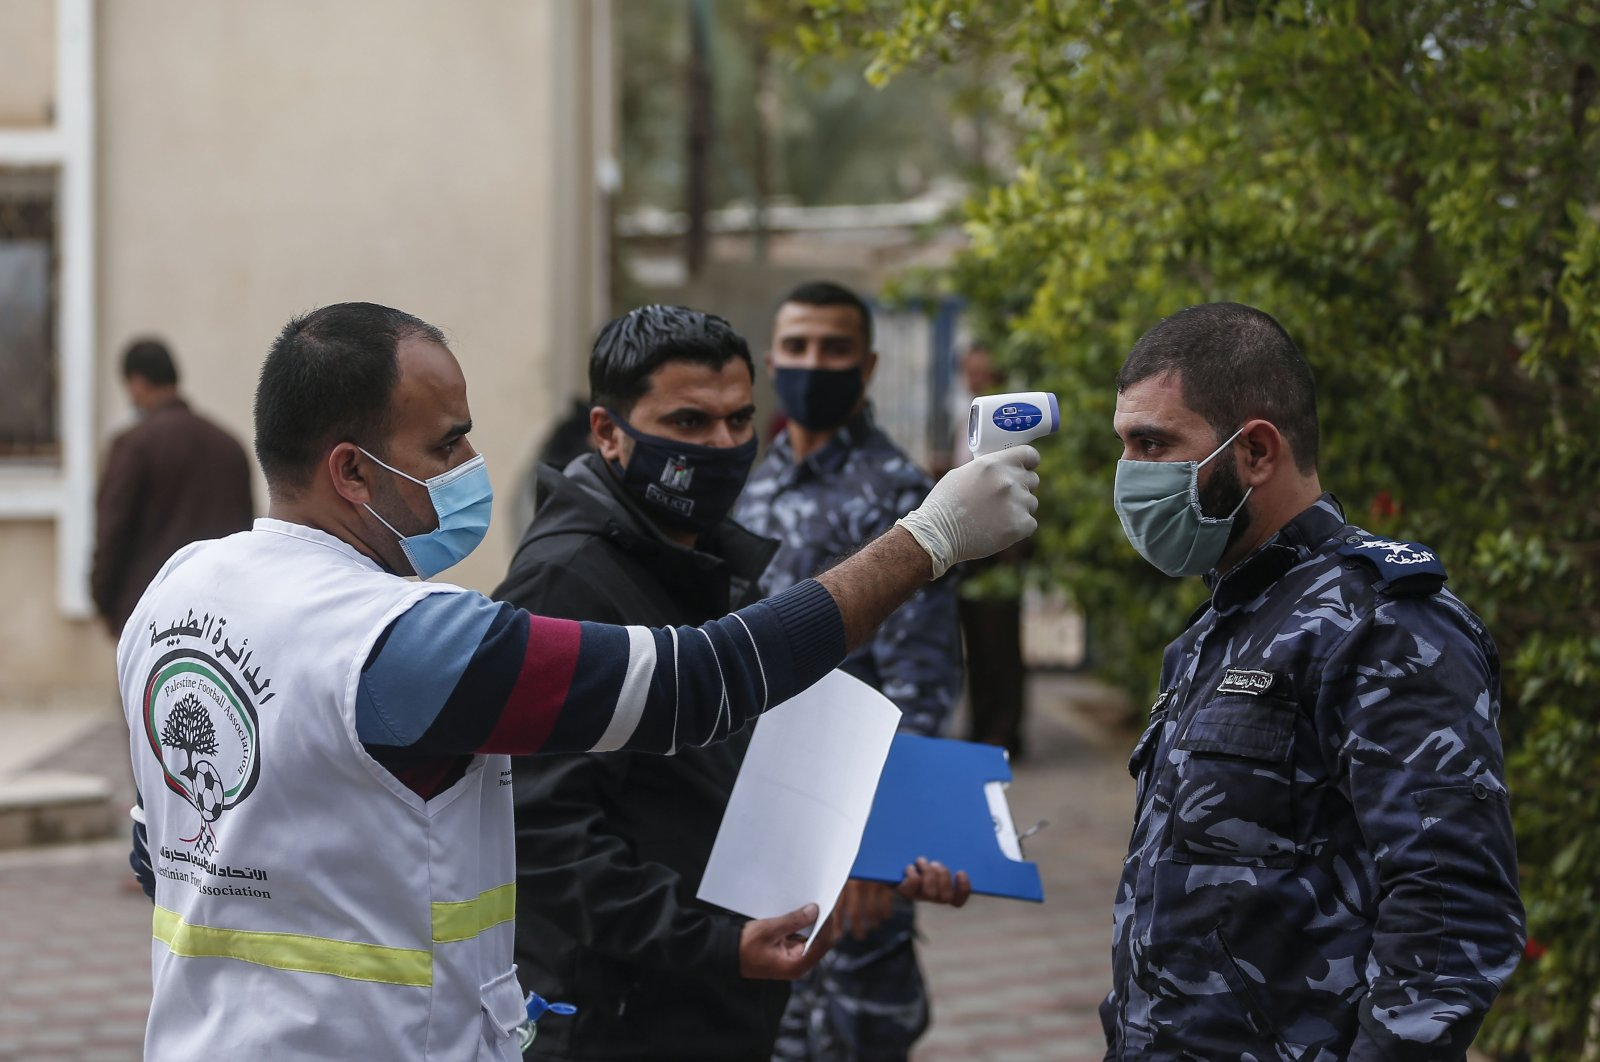 A Palestinian medical worker checks the temperature of a member of the security staff ahead of the final Gaza Cup match between Shabab Rafah and Khadamat Rafah football clubs, at the Mohammed al-Dura Stadium in Deir al-Balah in central Gaza Strip, Nov. 15, 2020. (AFP Photo)